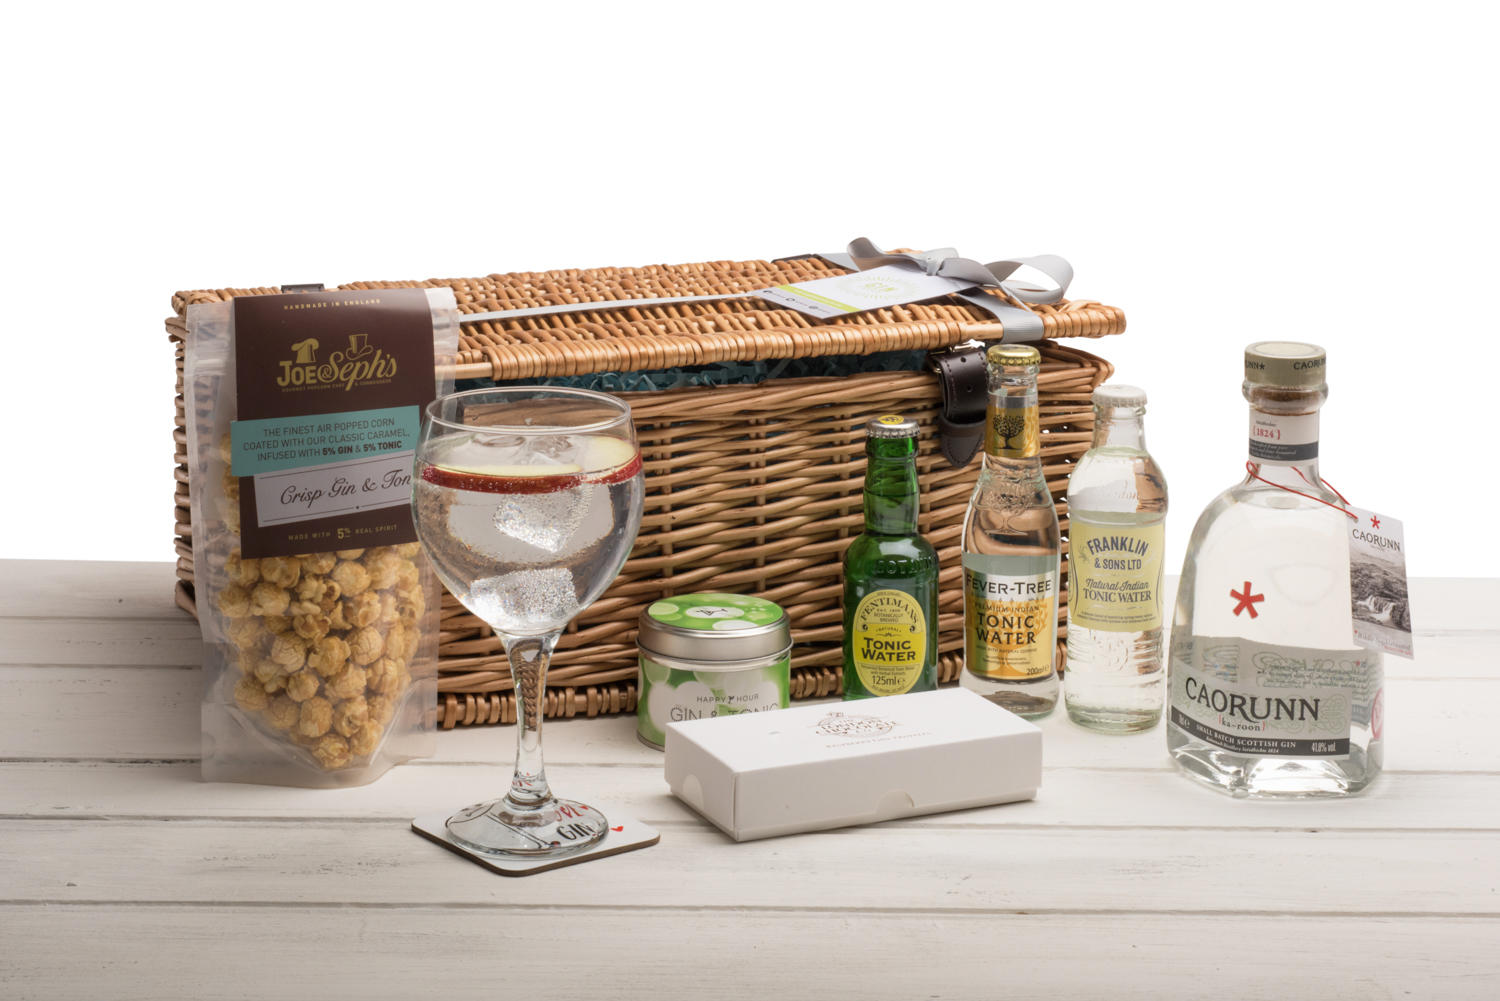 Caorunn Gin Hamper (Wicker Basket)